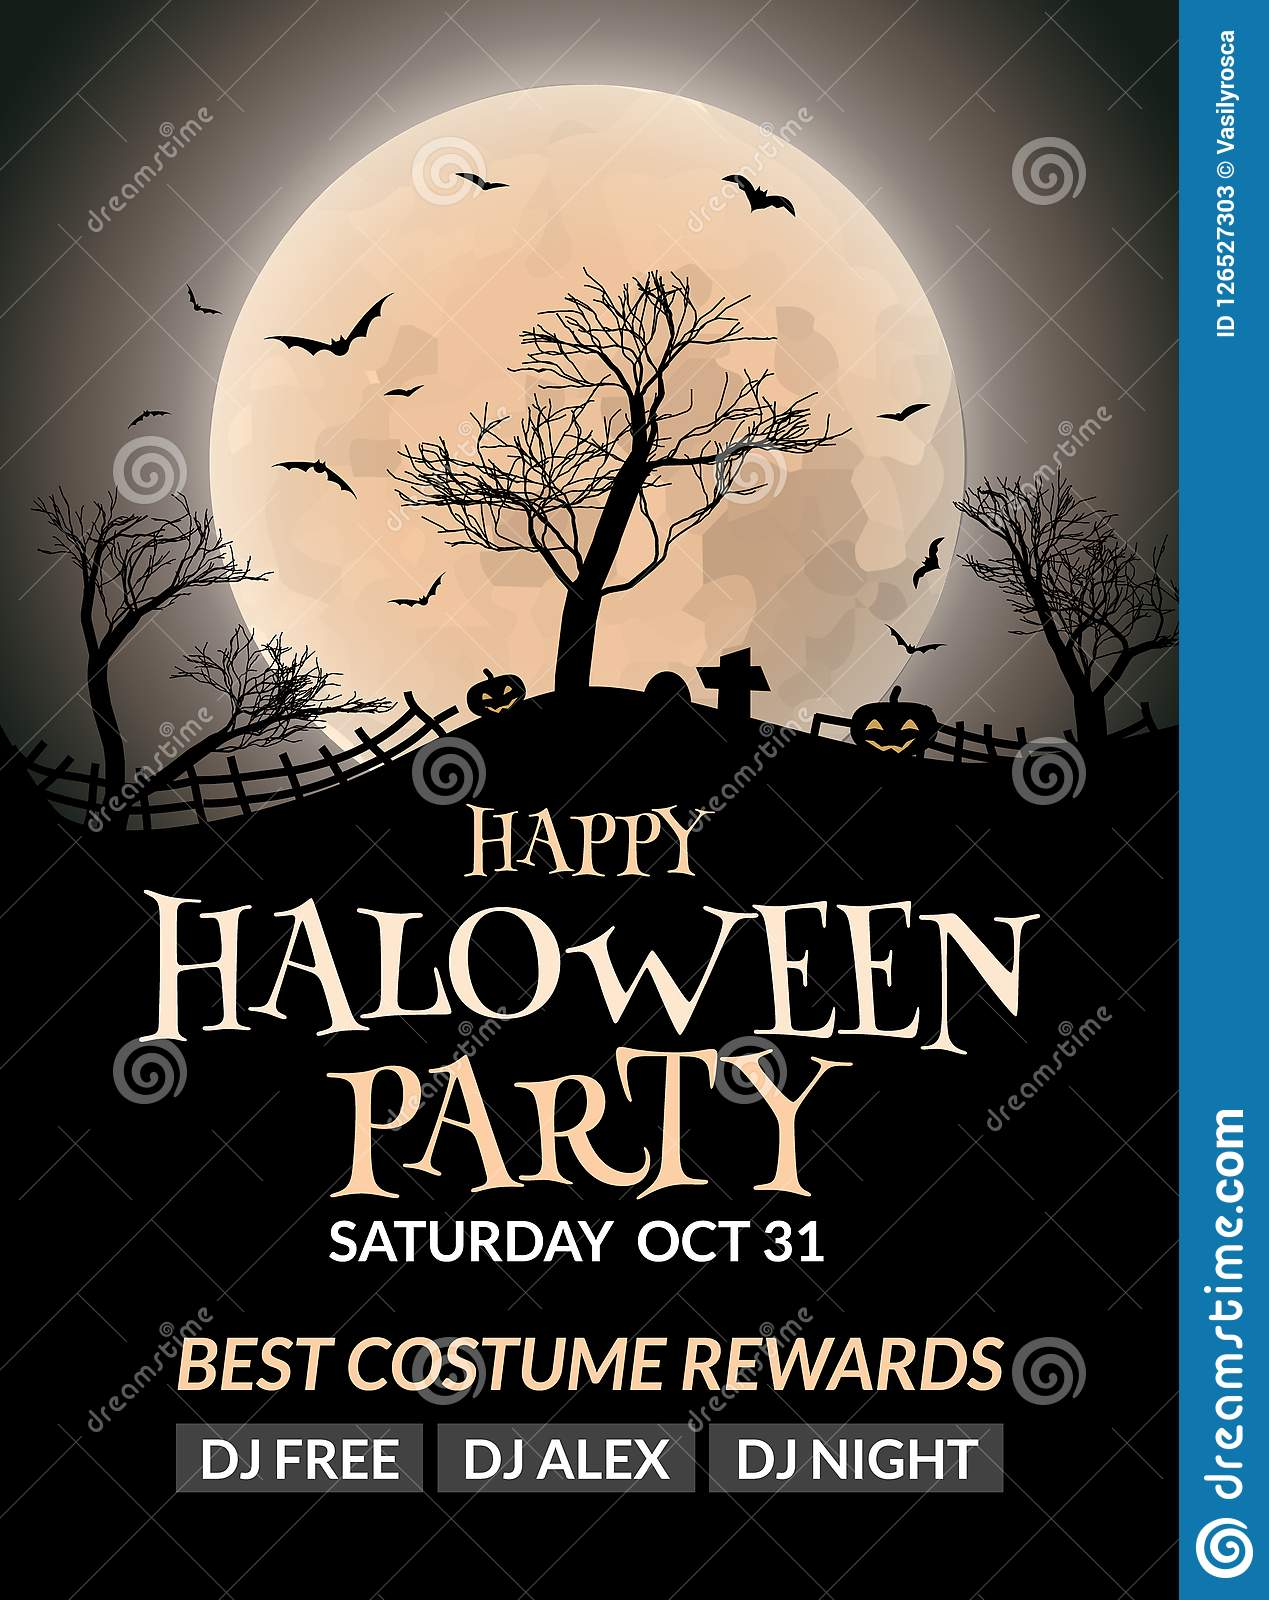 Halloween Flyer Or Poster Design Template Invitation Layout Wuth Tree Moon And Bat